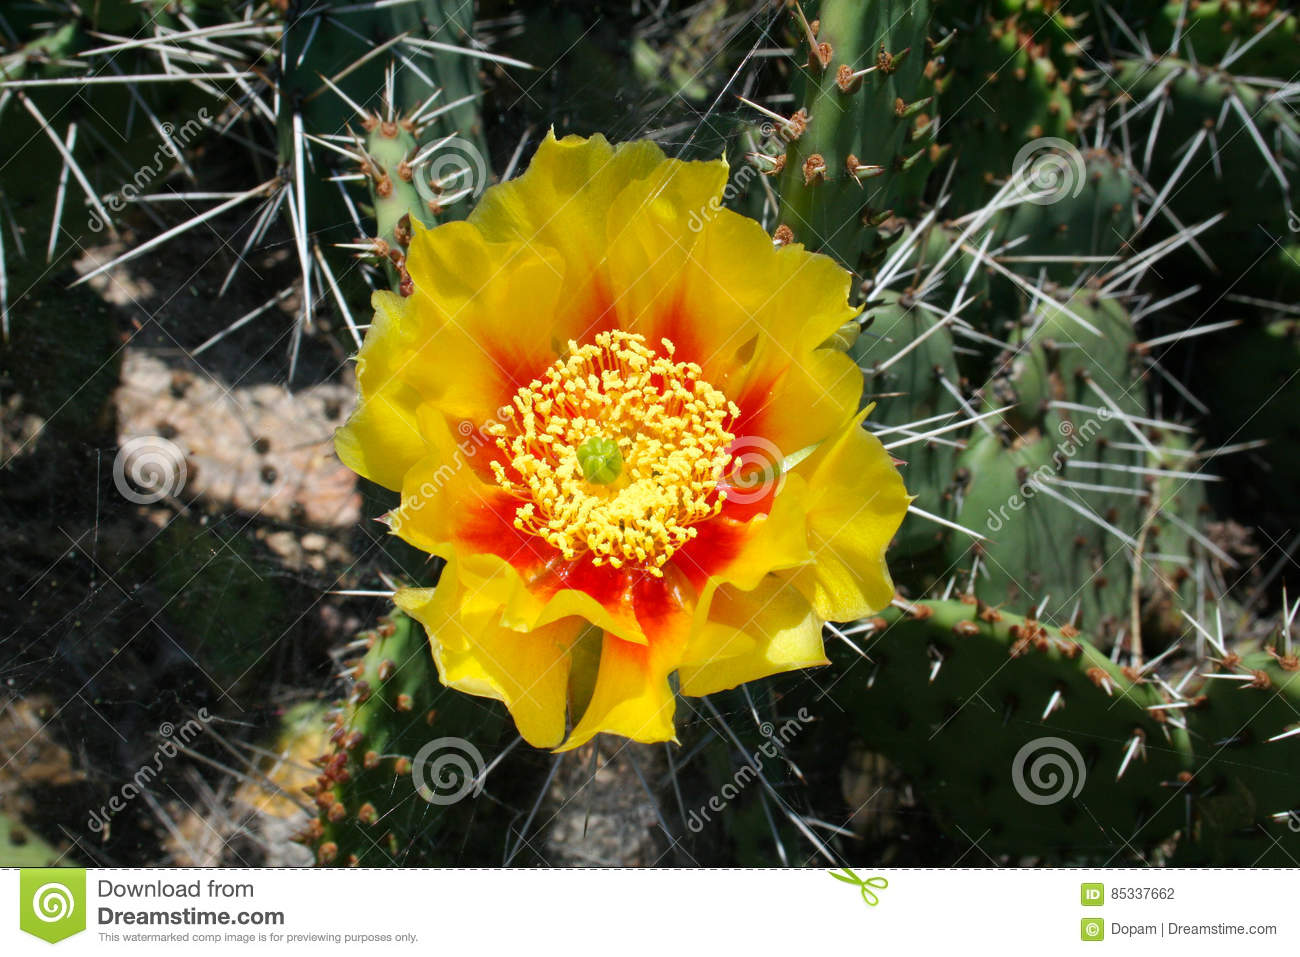 Opuntia Cactus Prickly Pears With Yellow Flower Stock Photo Image